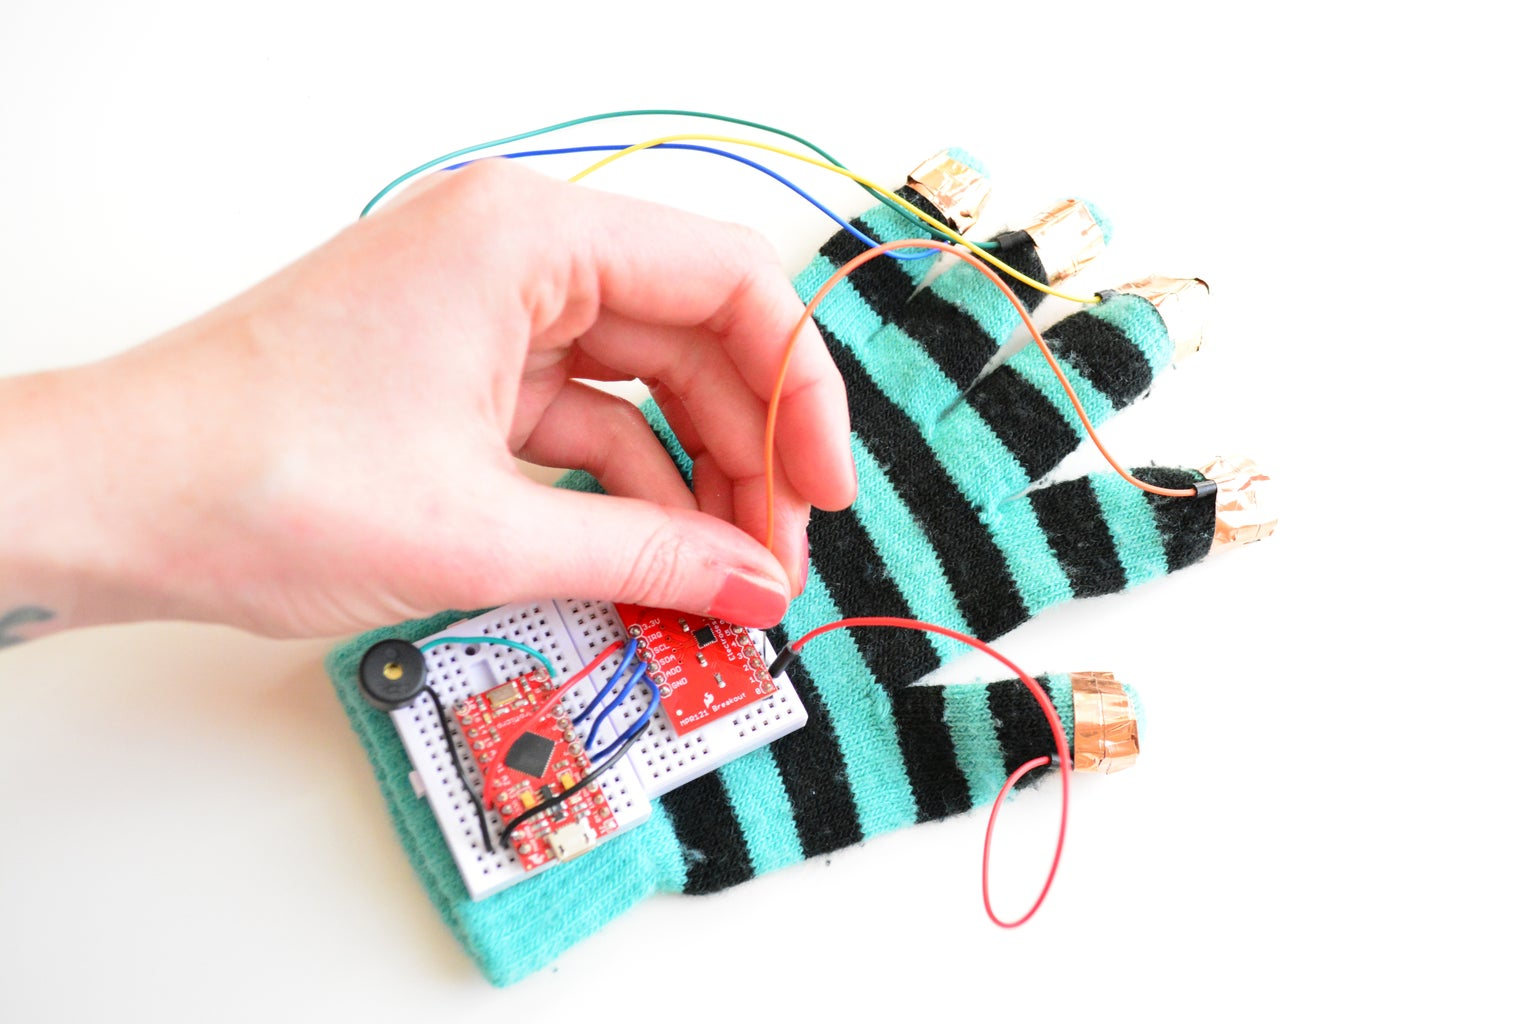 WIRE FINGERTIPS TO THE CAPACITIVE SENSE BREAKOUT